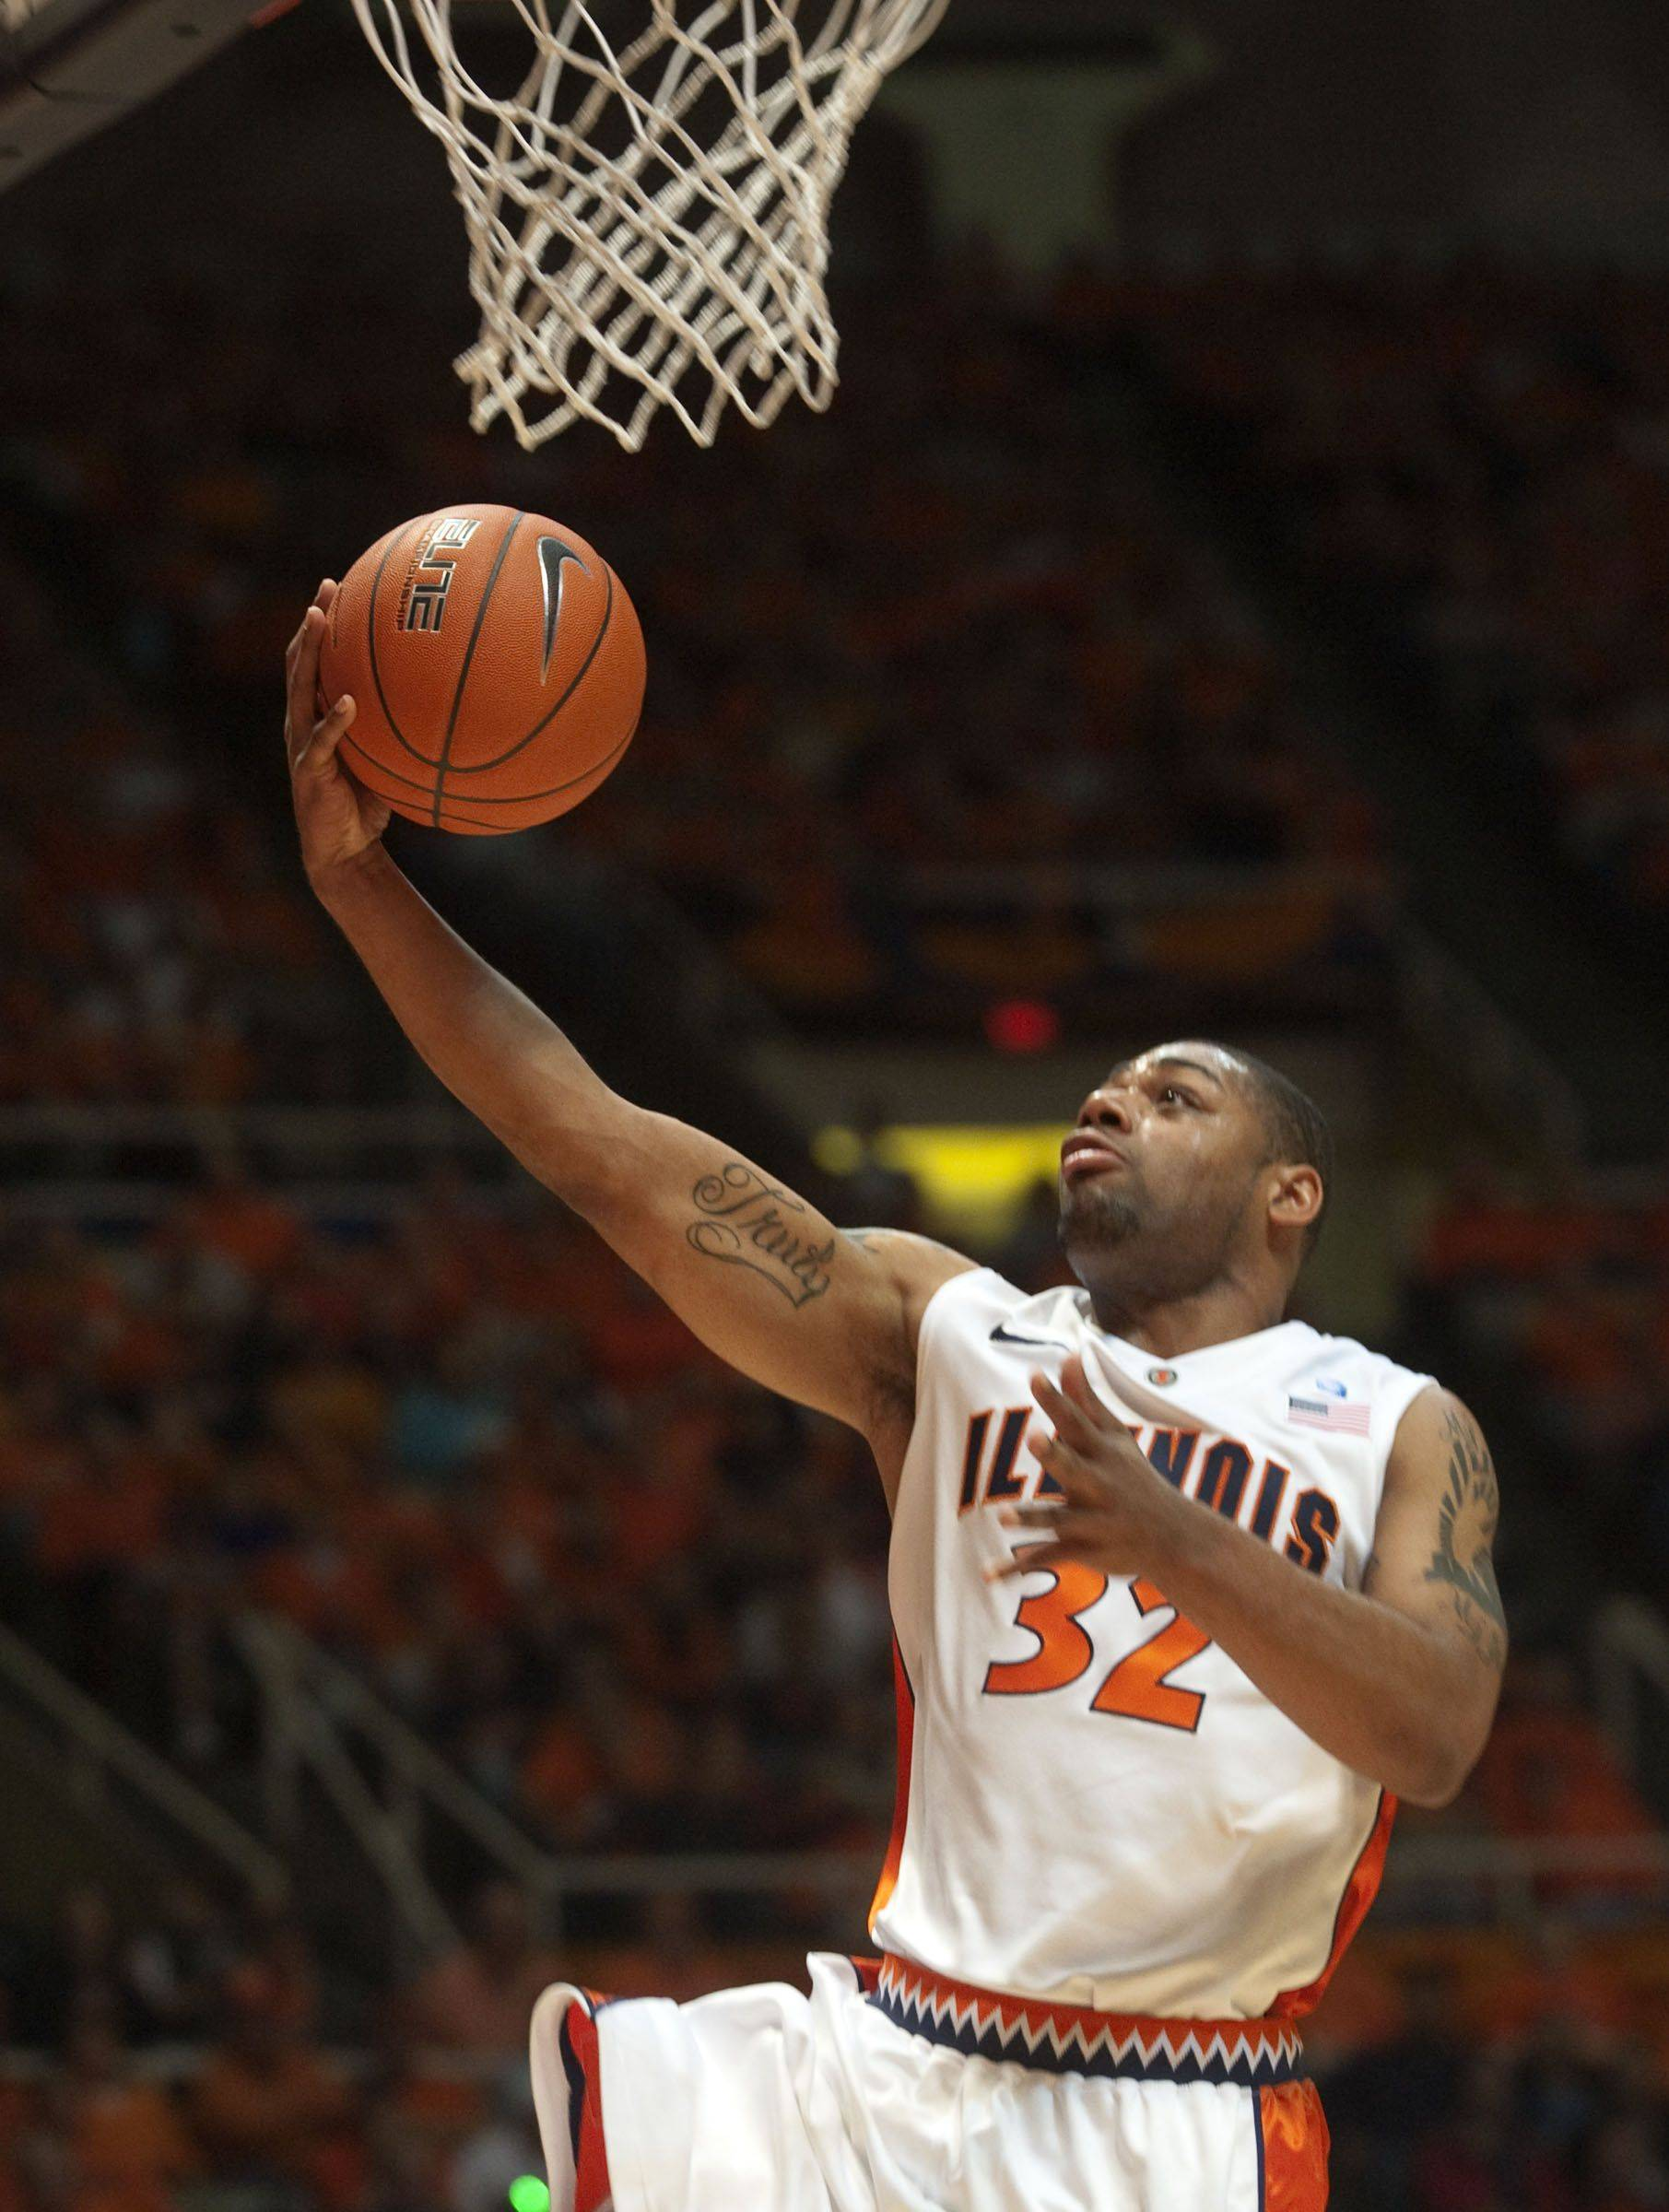 Illinois' Demetri McCamey scored 18 points and dished off 9 assists Saturday.